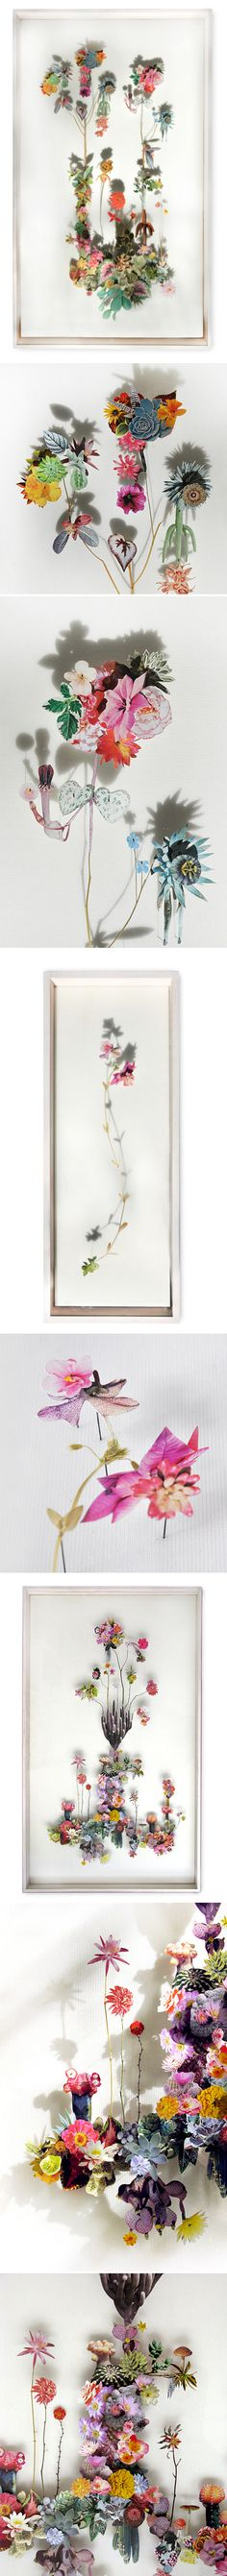 Cut flowers by Anne Ten . From the art blog: the jealous curator